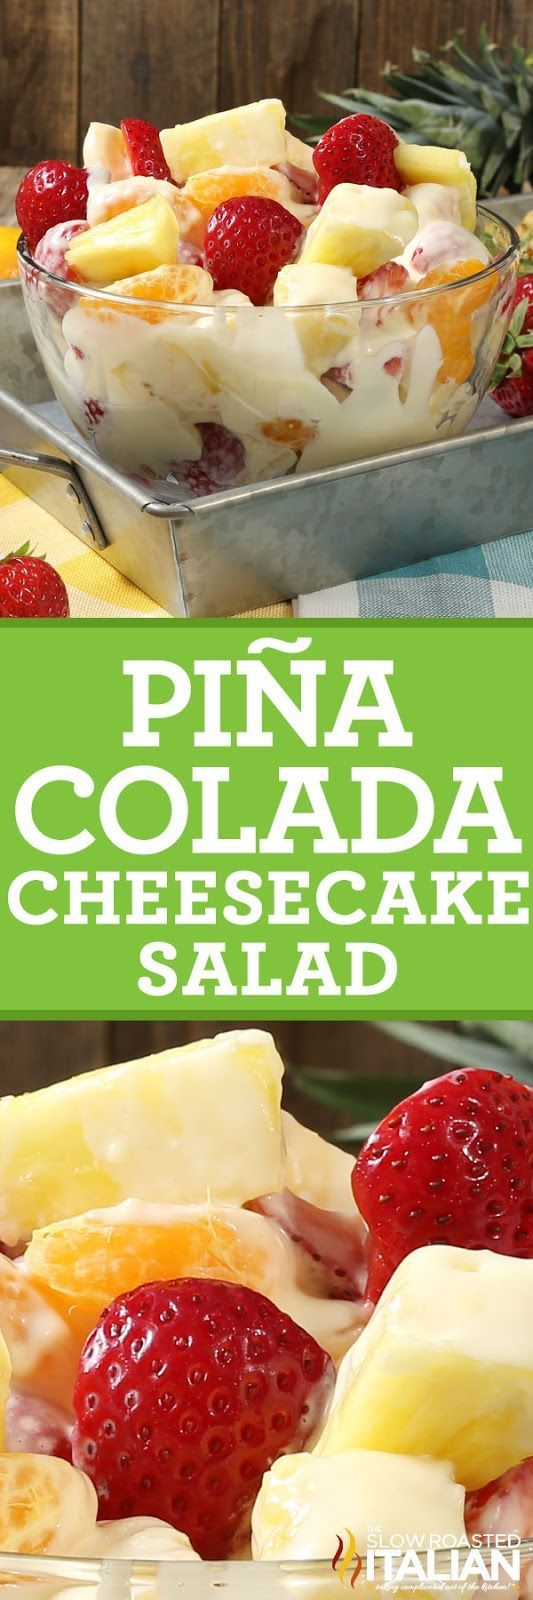 Pina Colada Cheesecake Salad | The Slow Roasted Italian | this is my latest obsession. This simple recipe starts with a fresh pineapple fruit salad tossed with a rich and buttery coconut rum cheesecake filling (don't worry it's kid friendly) to create the most spectacular fruit salad ever!